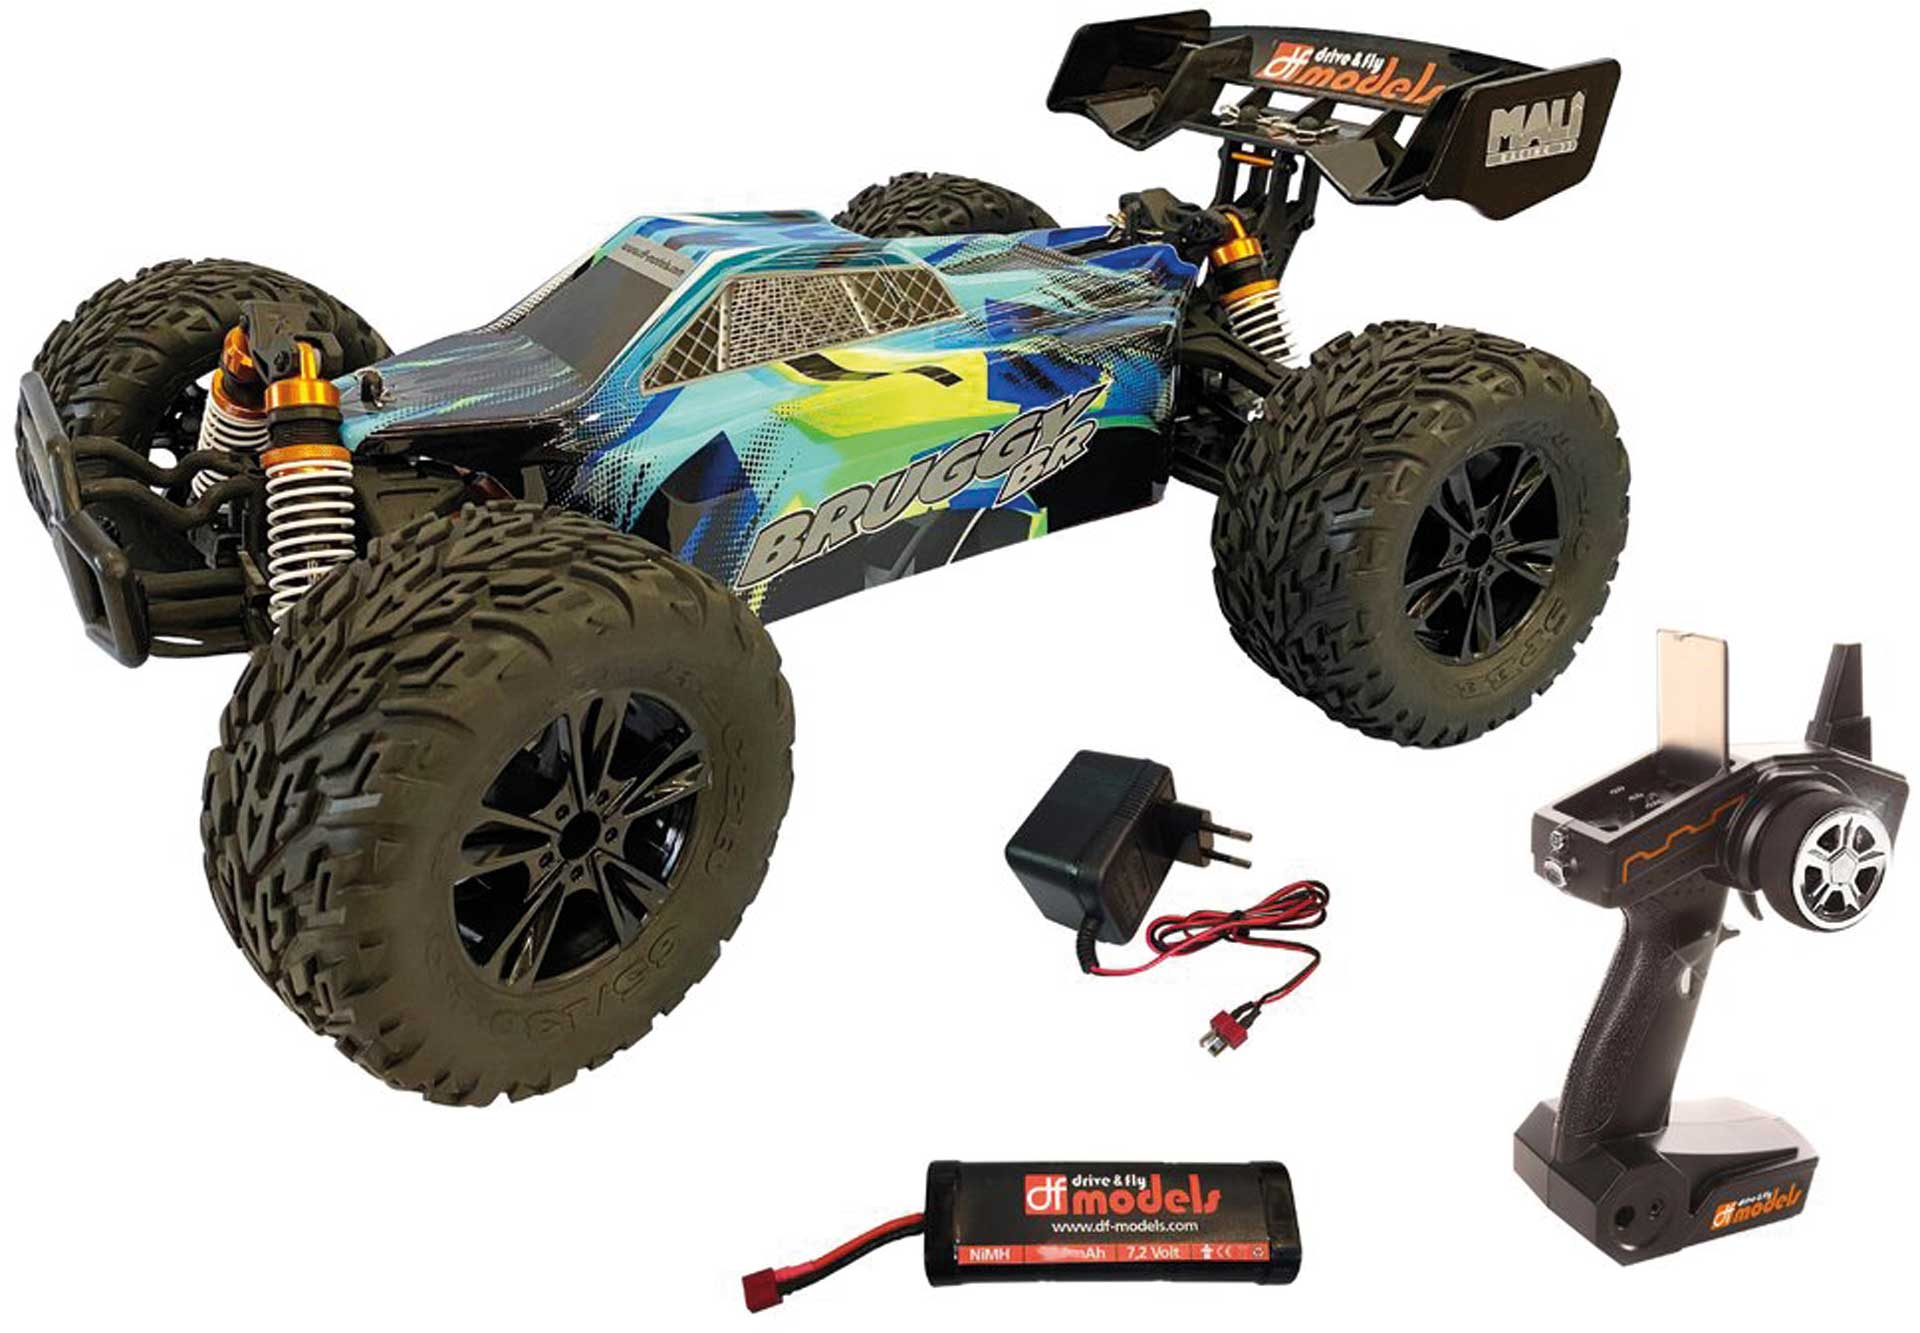 DRIVE & FLY MODELS Bruggy BR brushed 1/10XL RTR EP 4WD